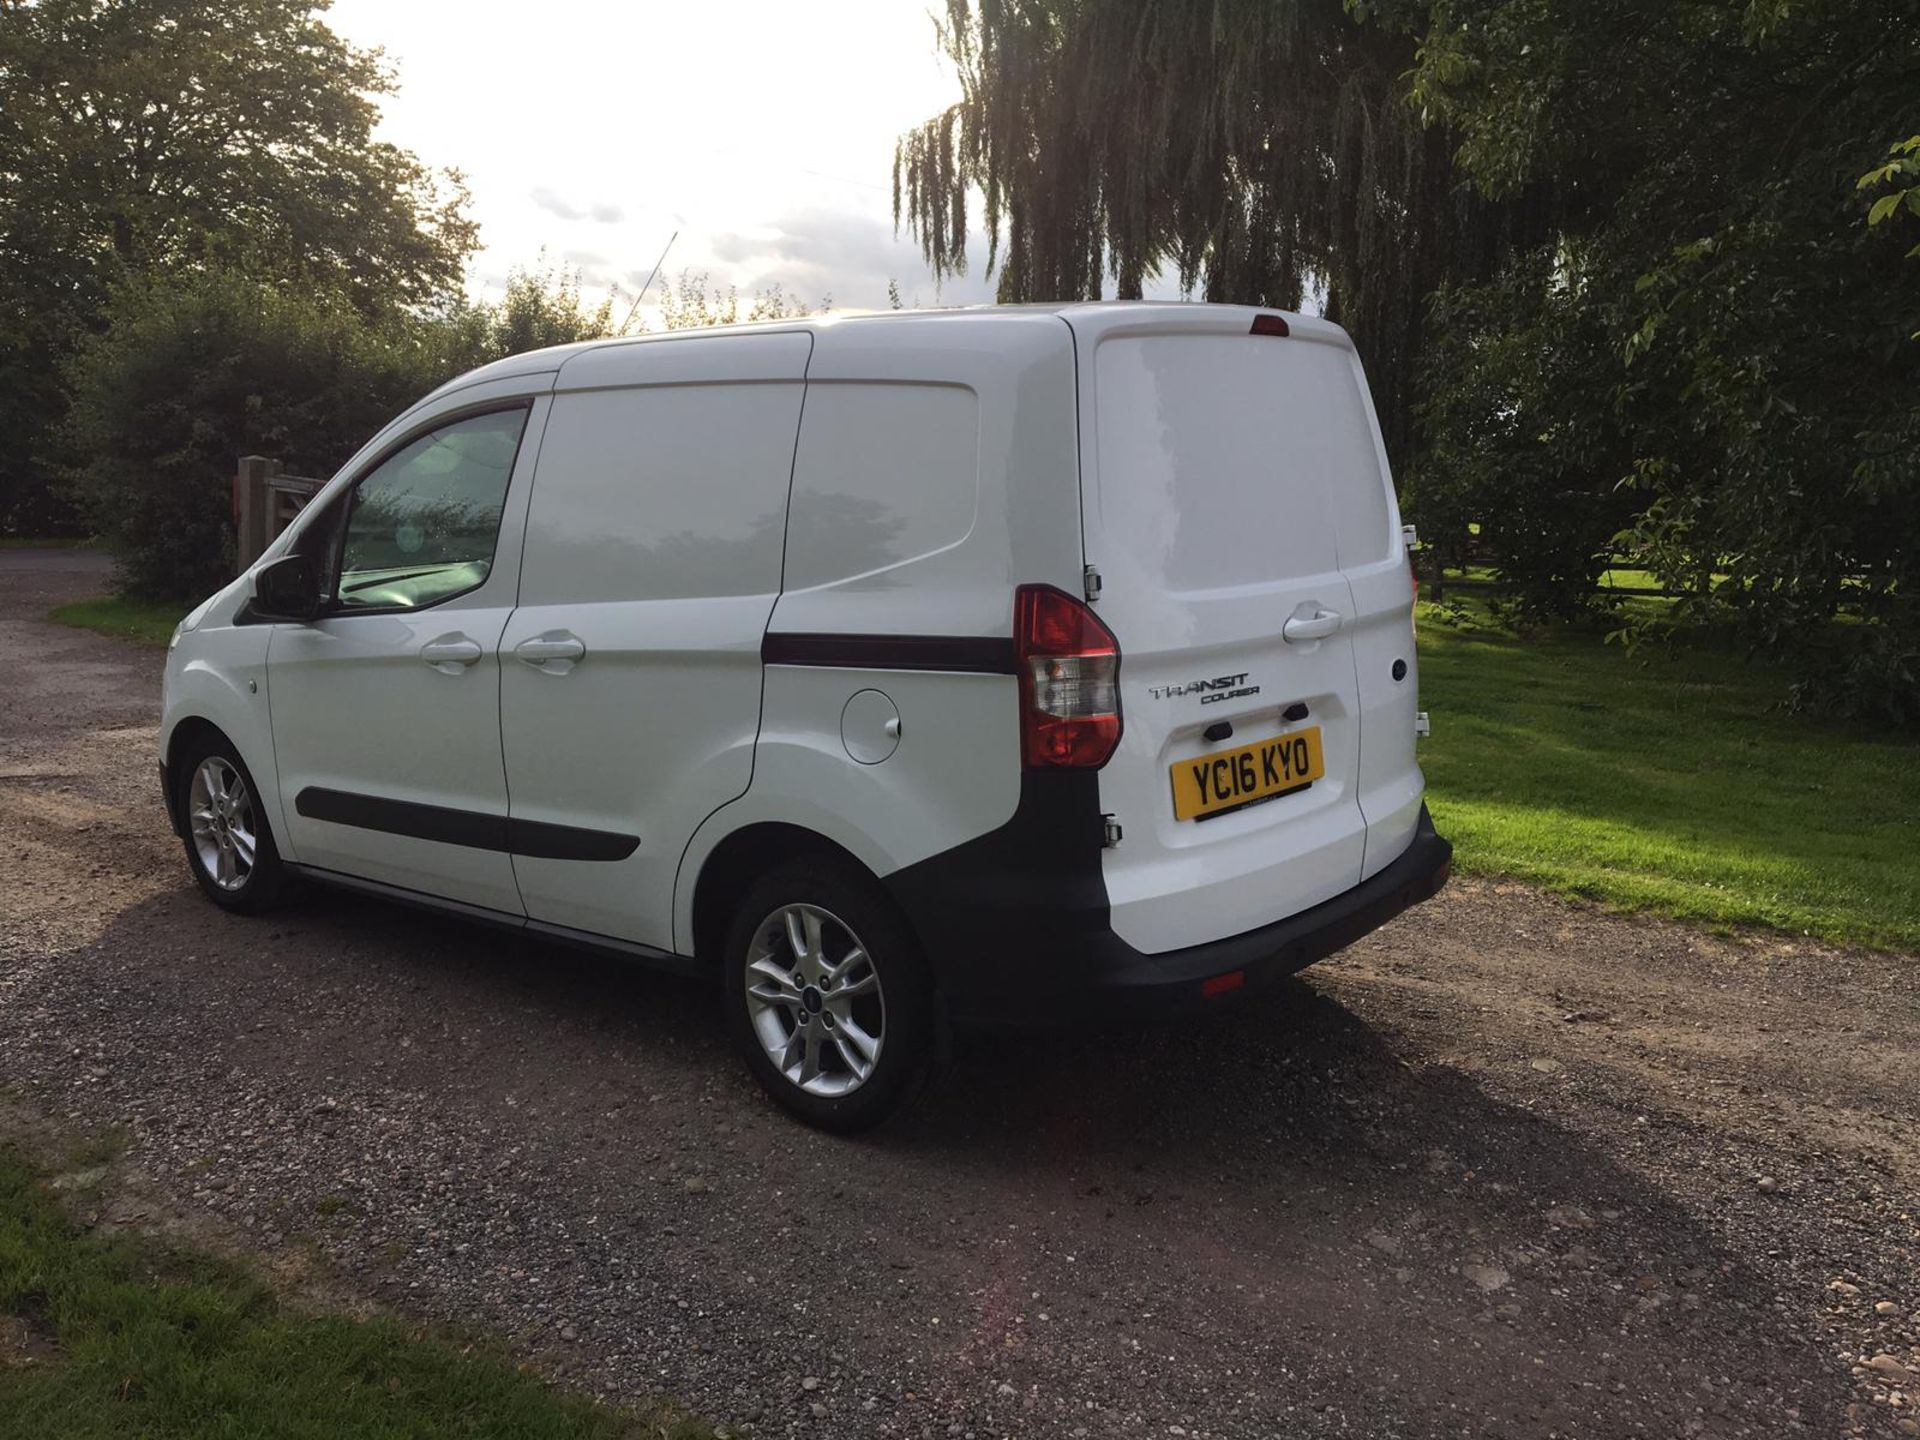 Lot 49 - 2016/16 REG FORD TRANSIT COURIER BASE TDCI 1.5 DIESEL PANEL VAN, SHOWING 0 FORMER KEEPERS *NO VAT*